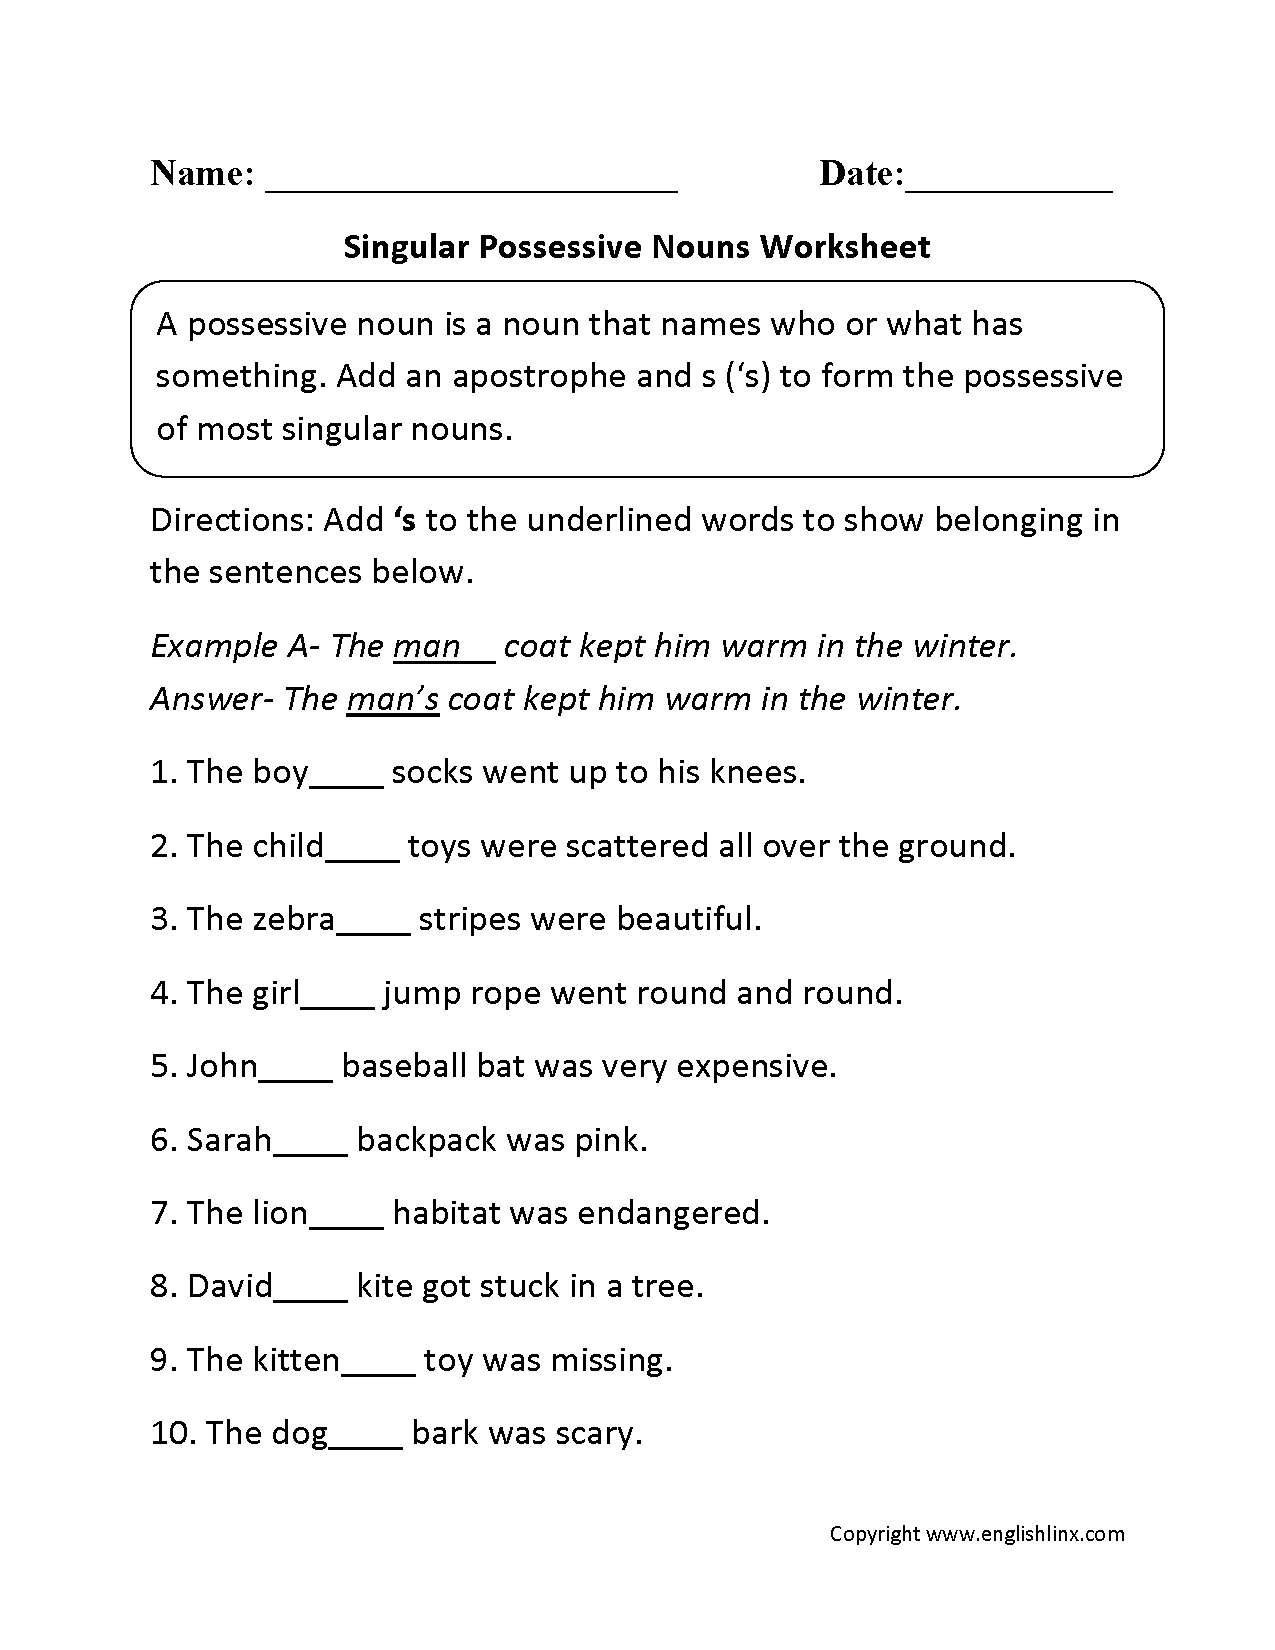 Worksheets Apostrophes Worksheet singular possessive nouns worksheets back to learning support this worksheet directs the student add an apostrophe s each noun make it possessive